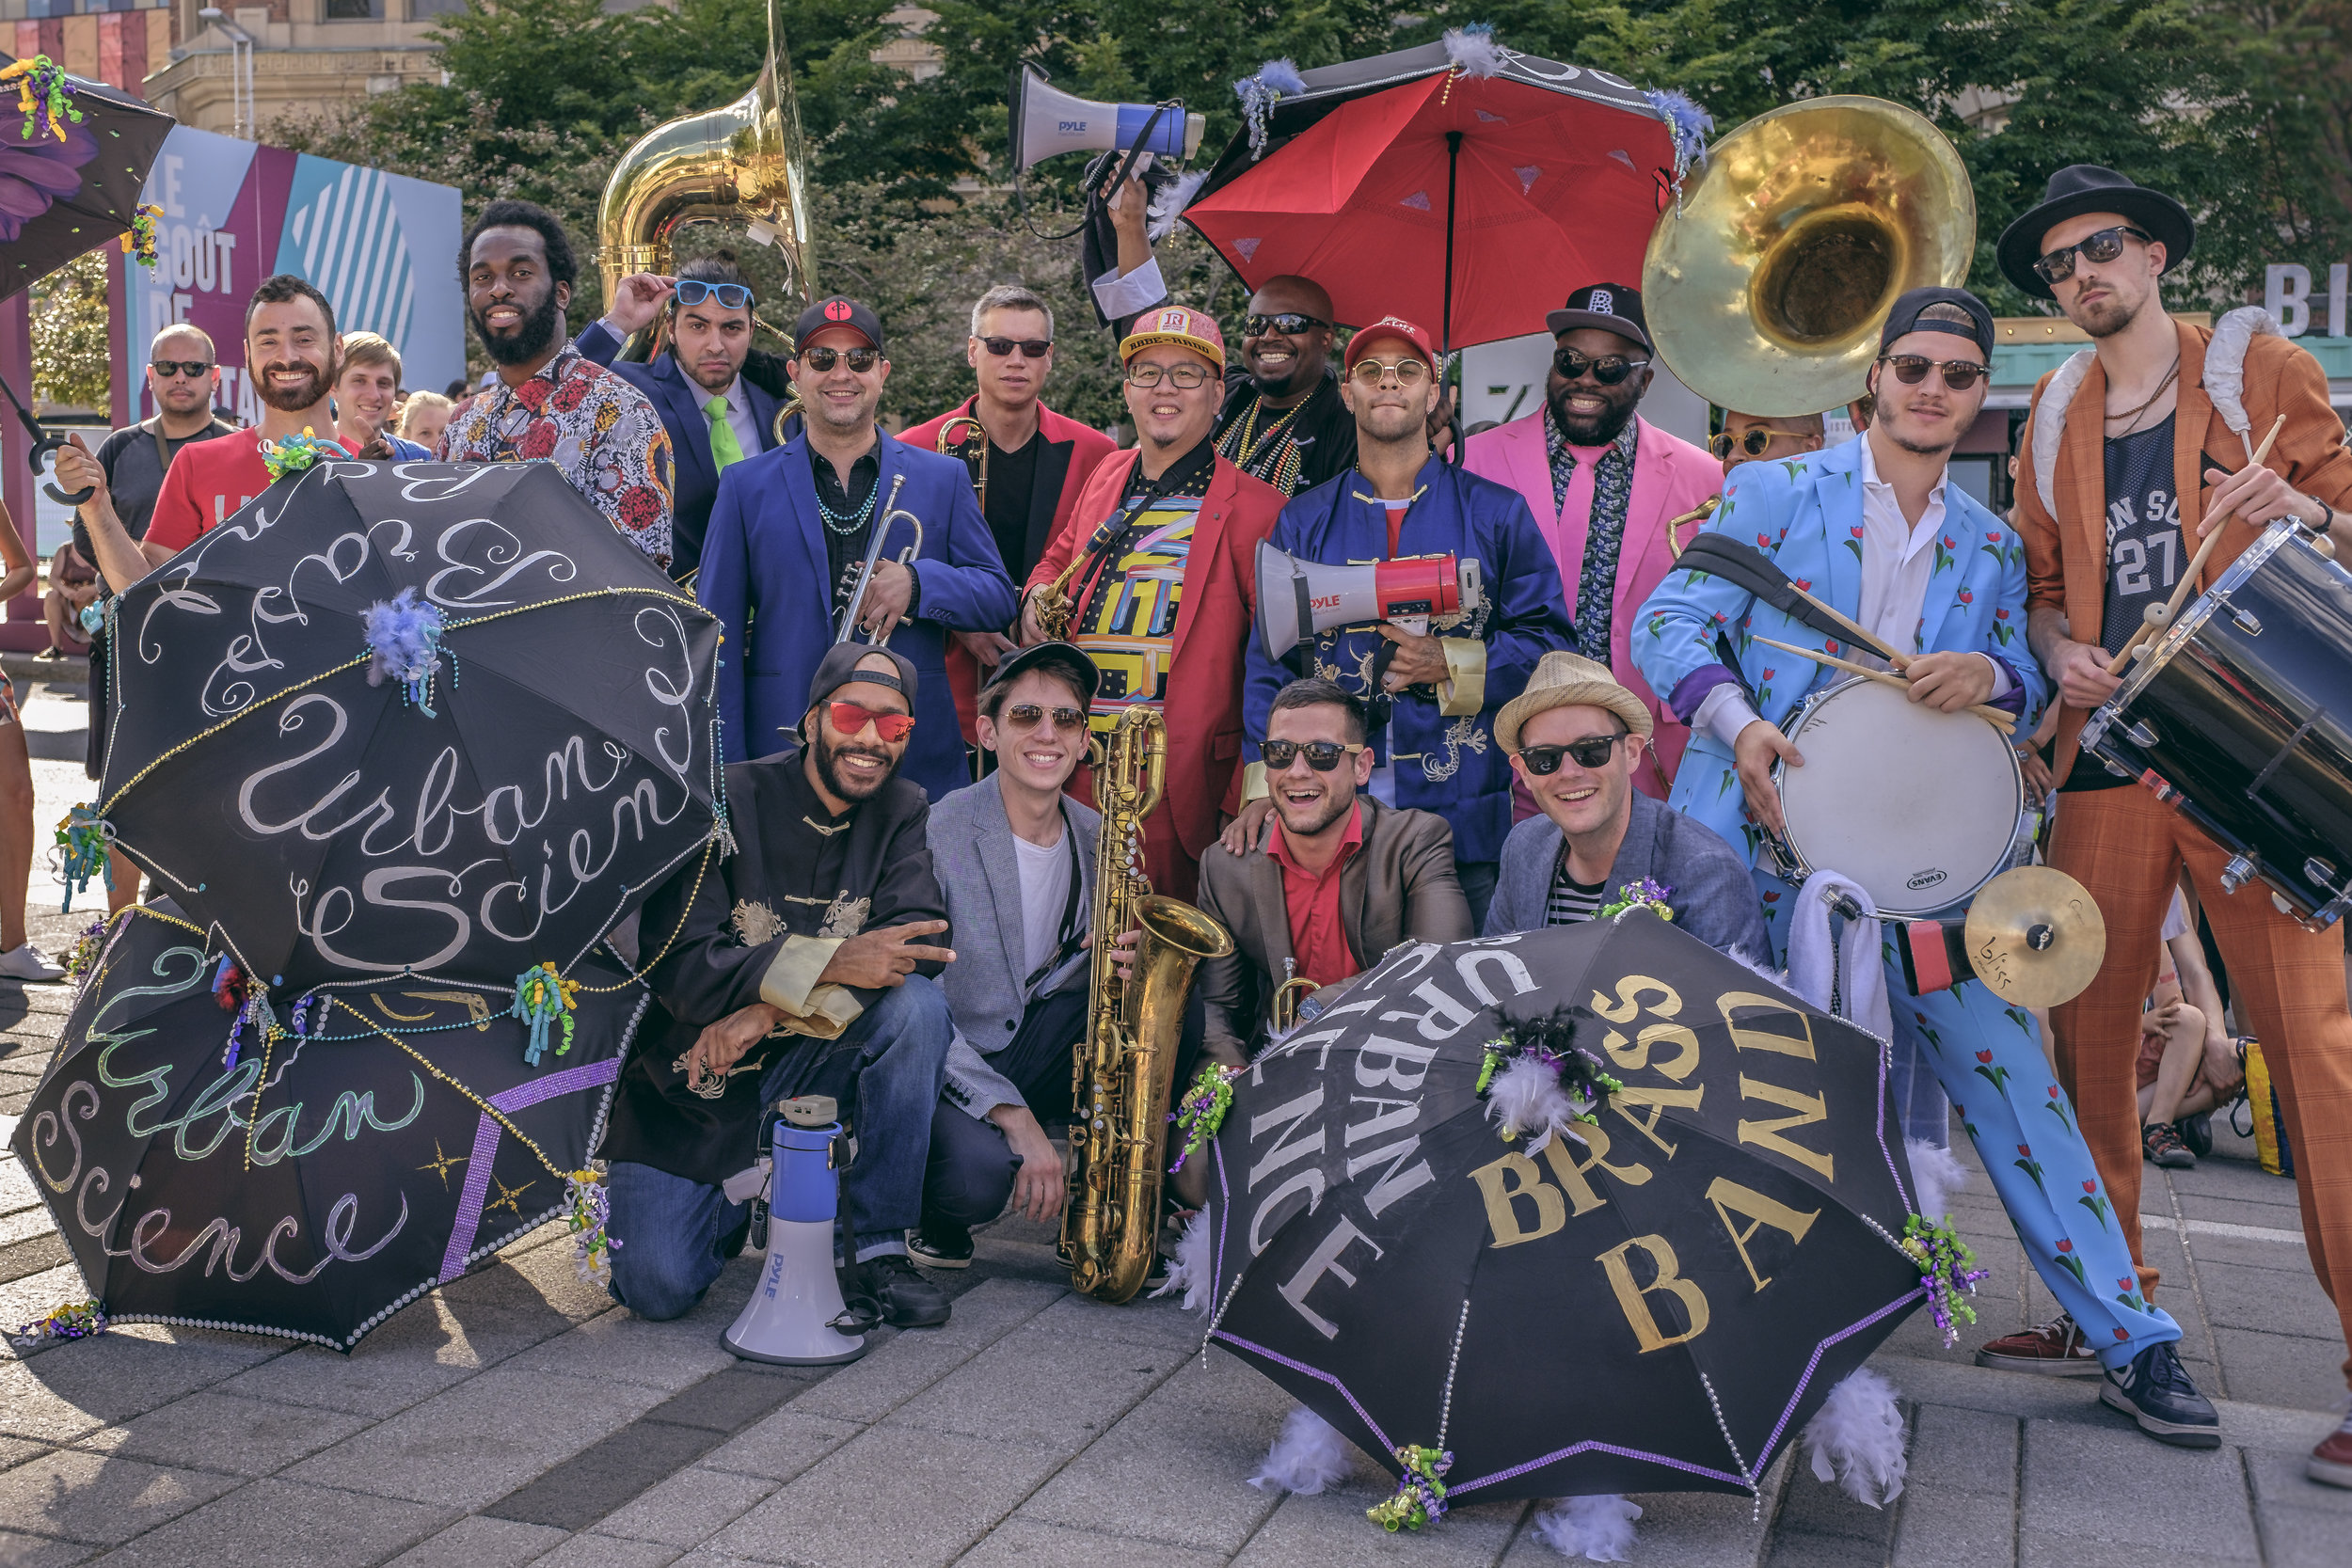 URBAN SCIENCE BRASS BAND